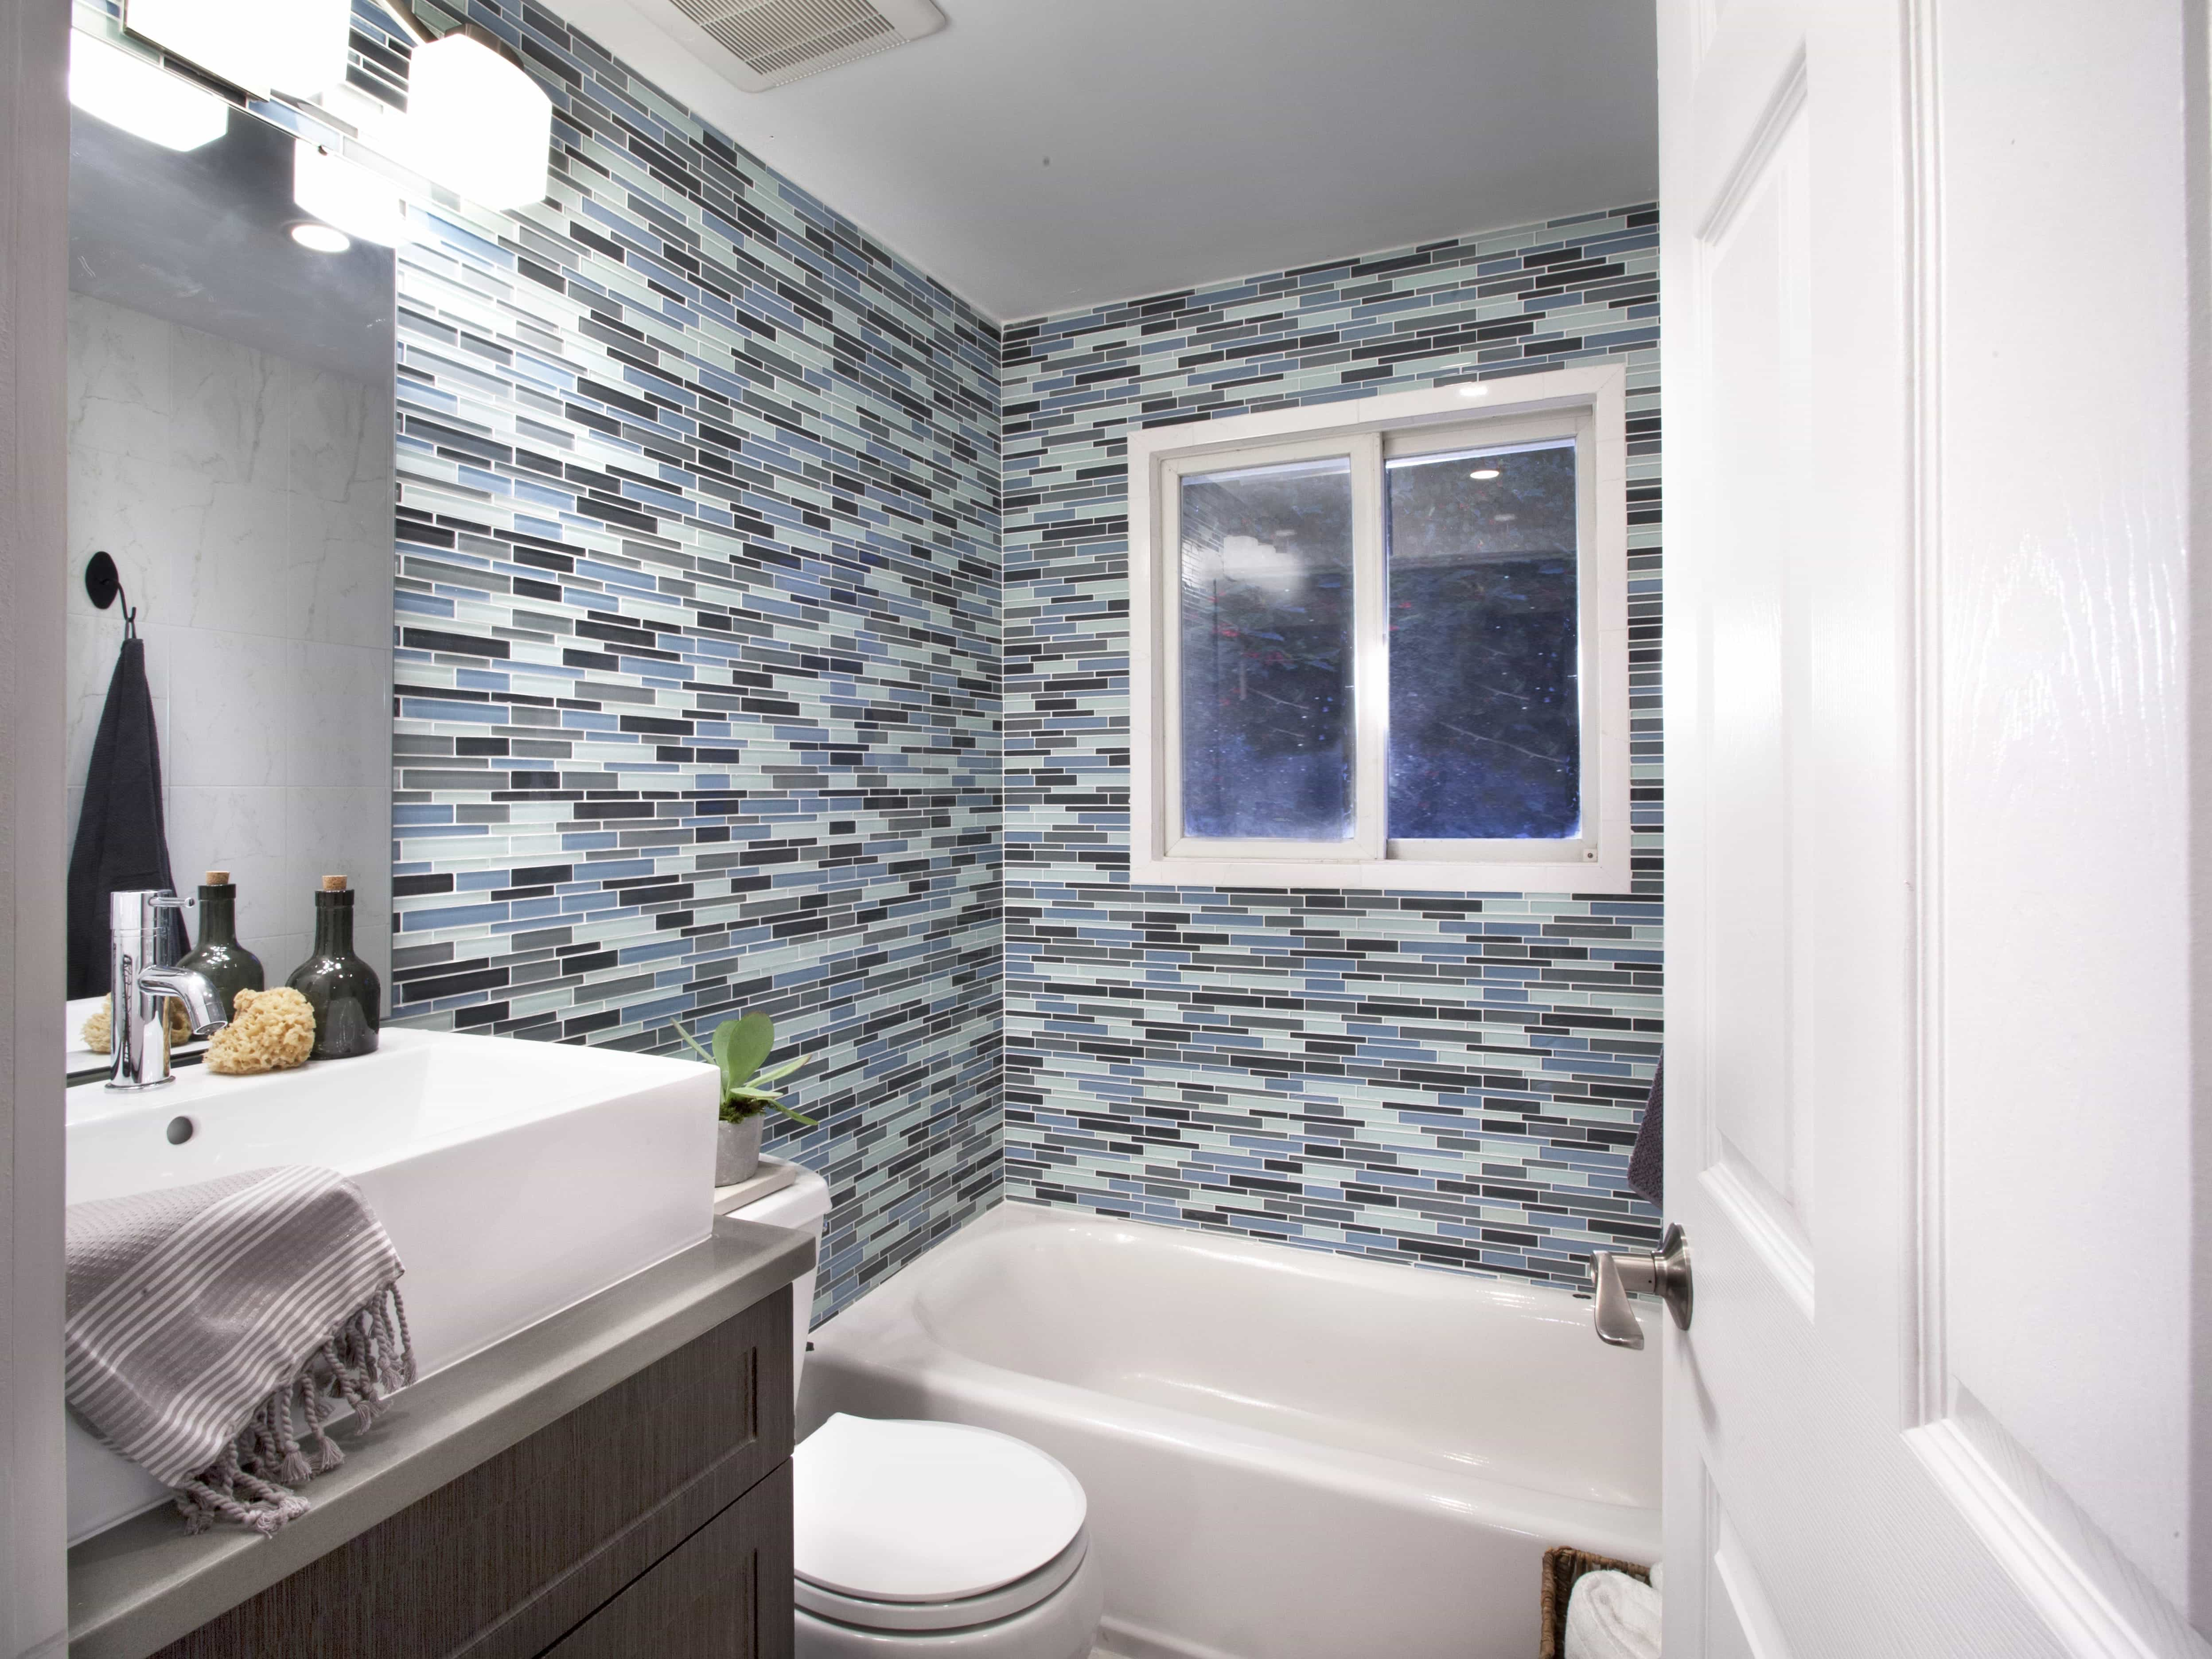 Visually Superb Bathrooms With Funky Geometric Wallpaper (View 8 of 10)